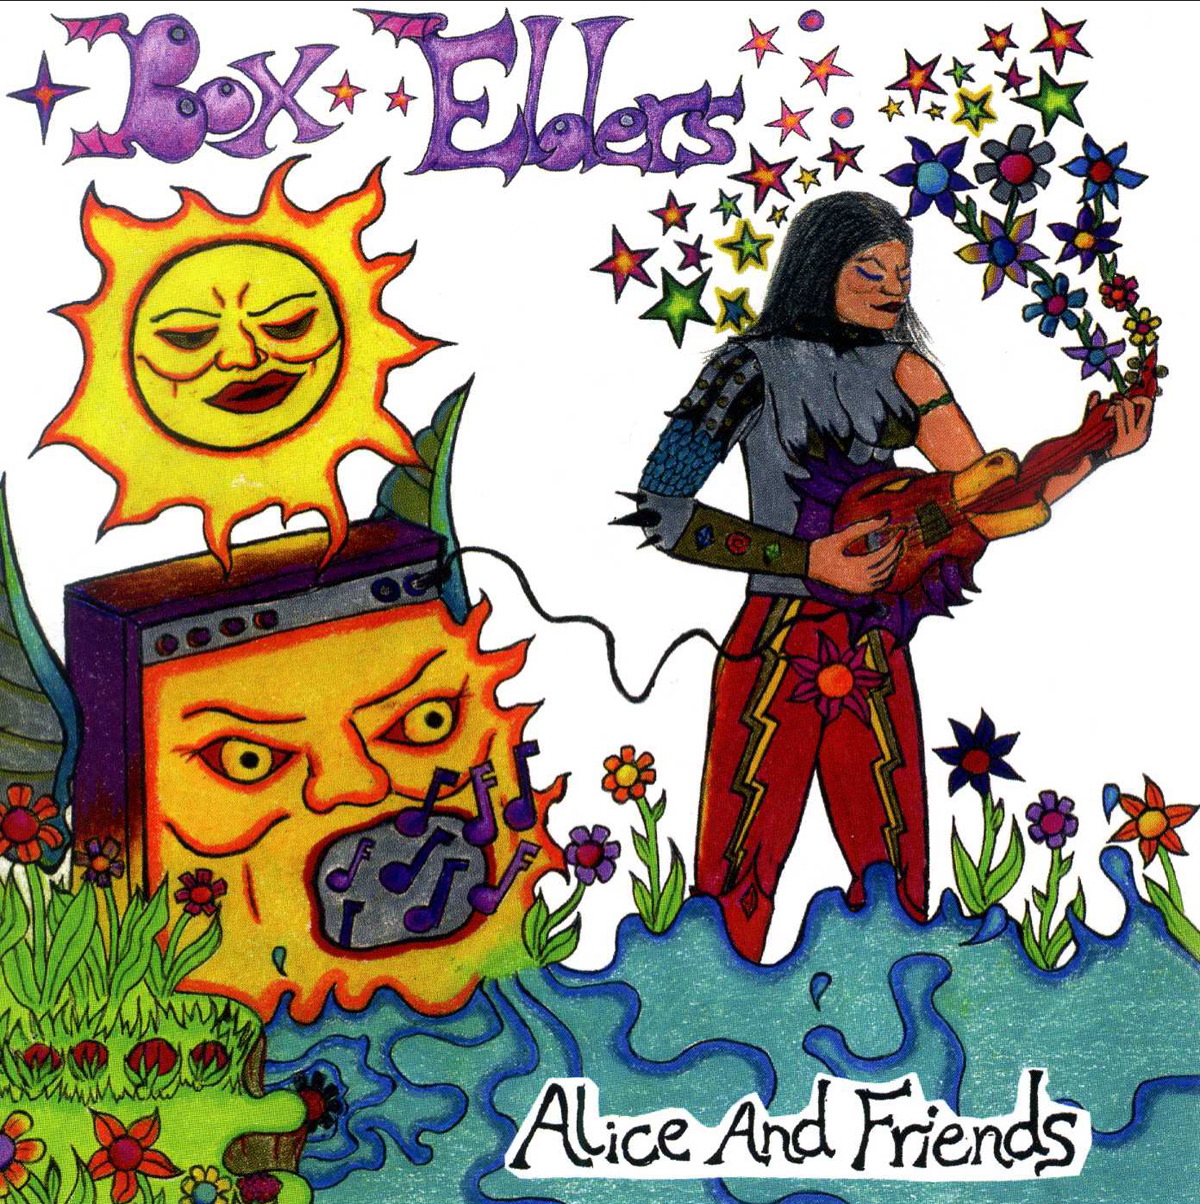 BOX ELDERS - ALICE AND FRIENDS